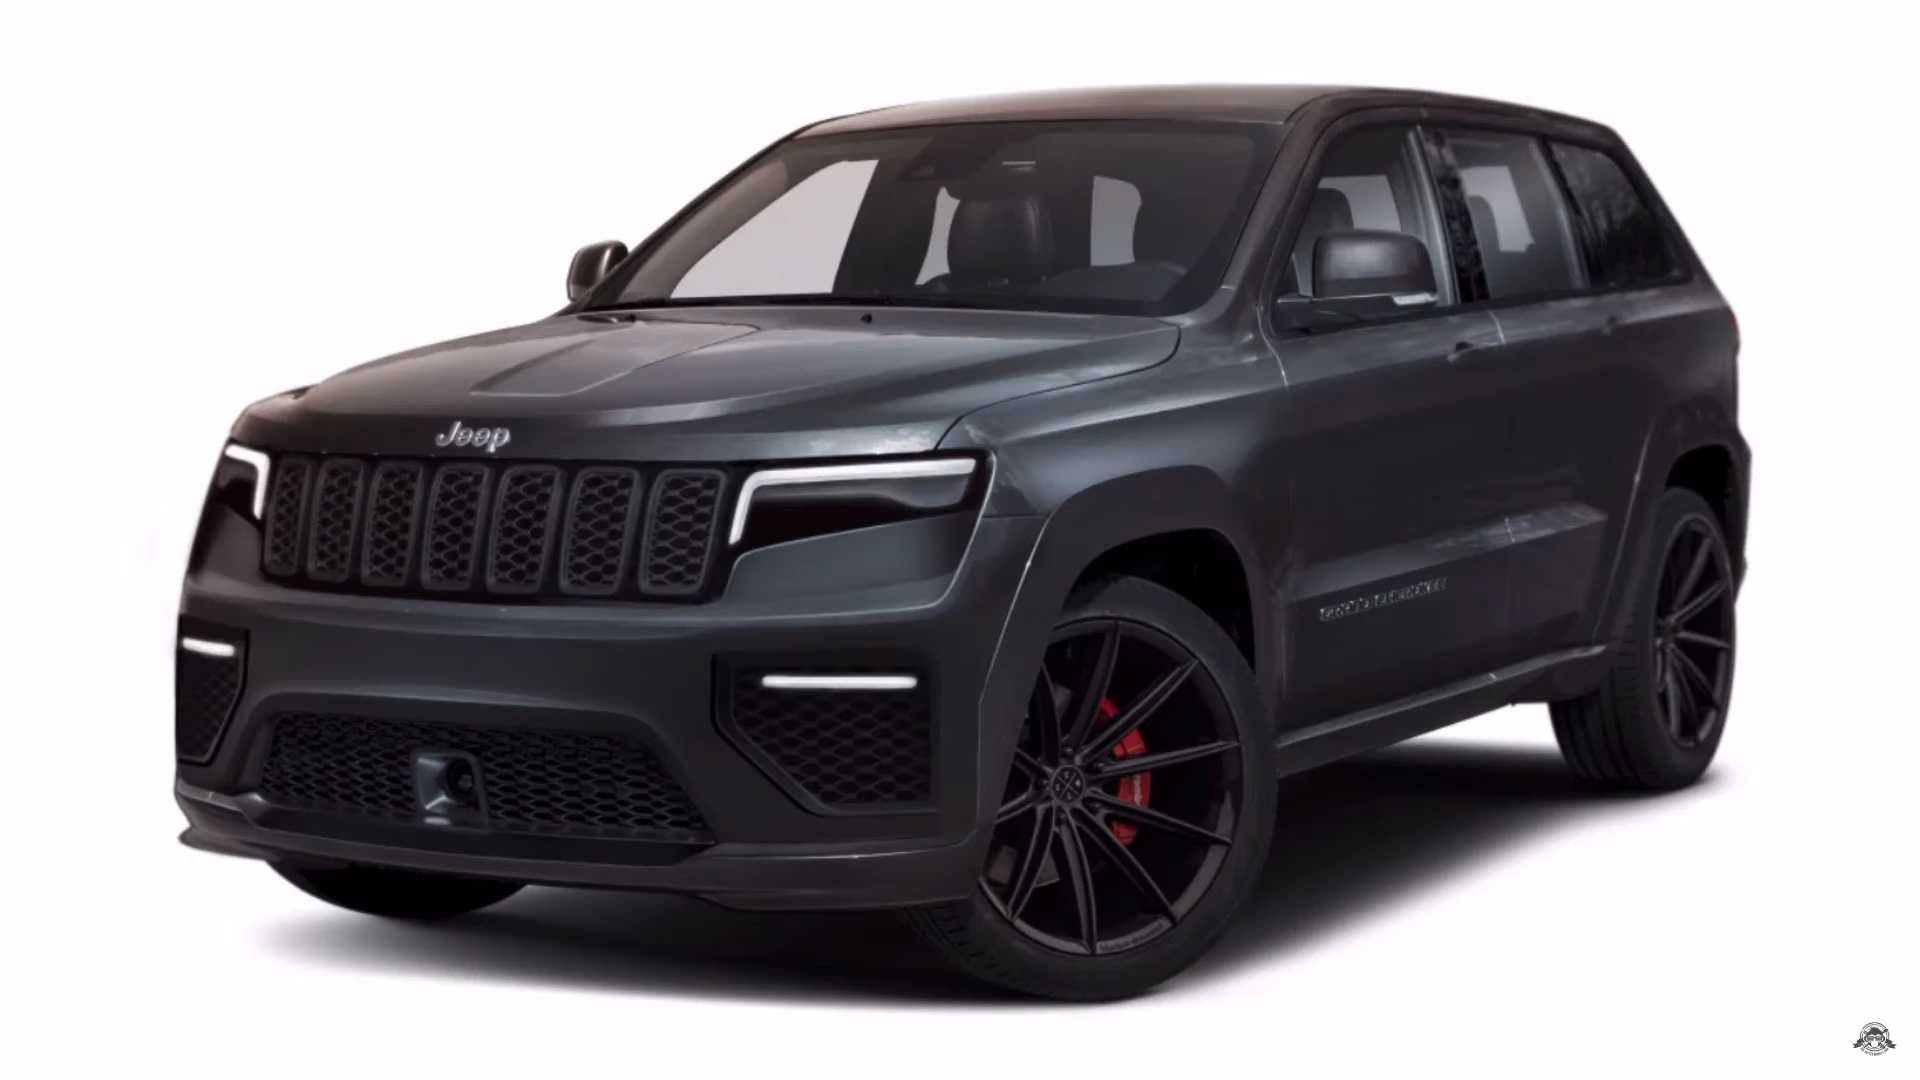 Jeep Cherokee 2021 Redesign Overview In 2020 Jeep Grand Cherokee Jeep Grand Cherokee Srt Grand Cherokee Srt8